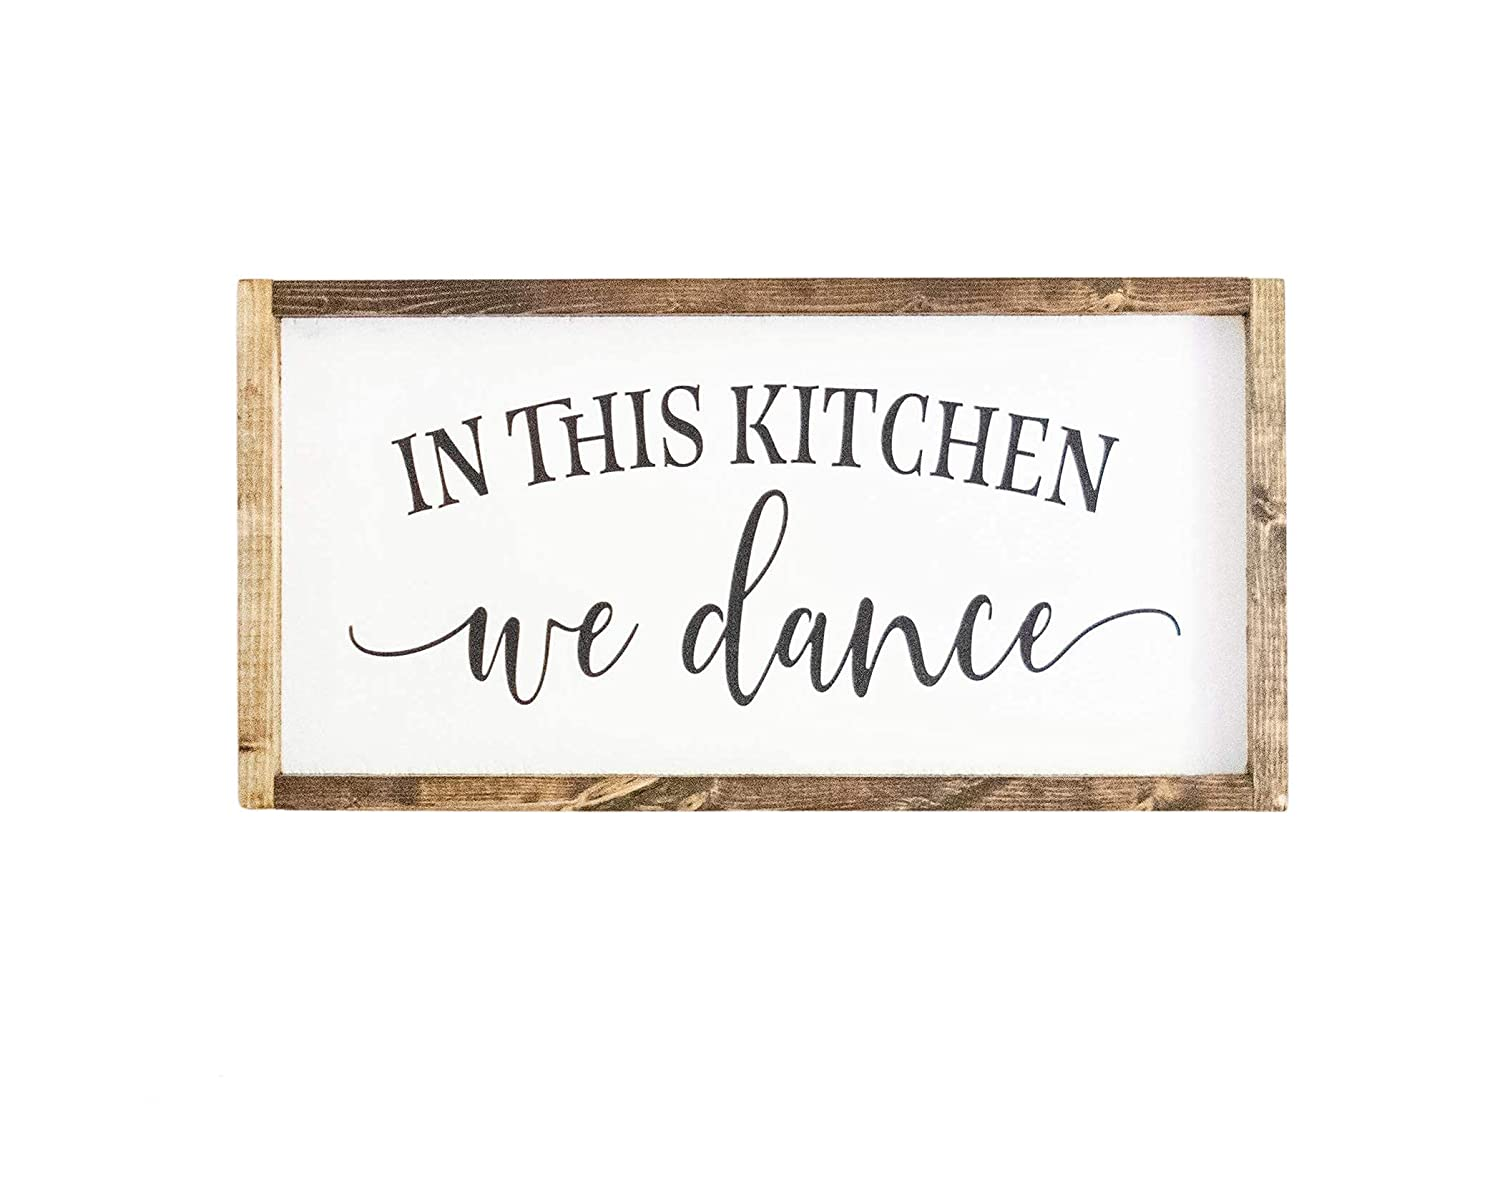 In This Kitchen We Dance Wood rustic farmh San Antonio Mall Sign Framed Large-scale sale Handmade